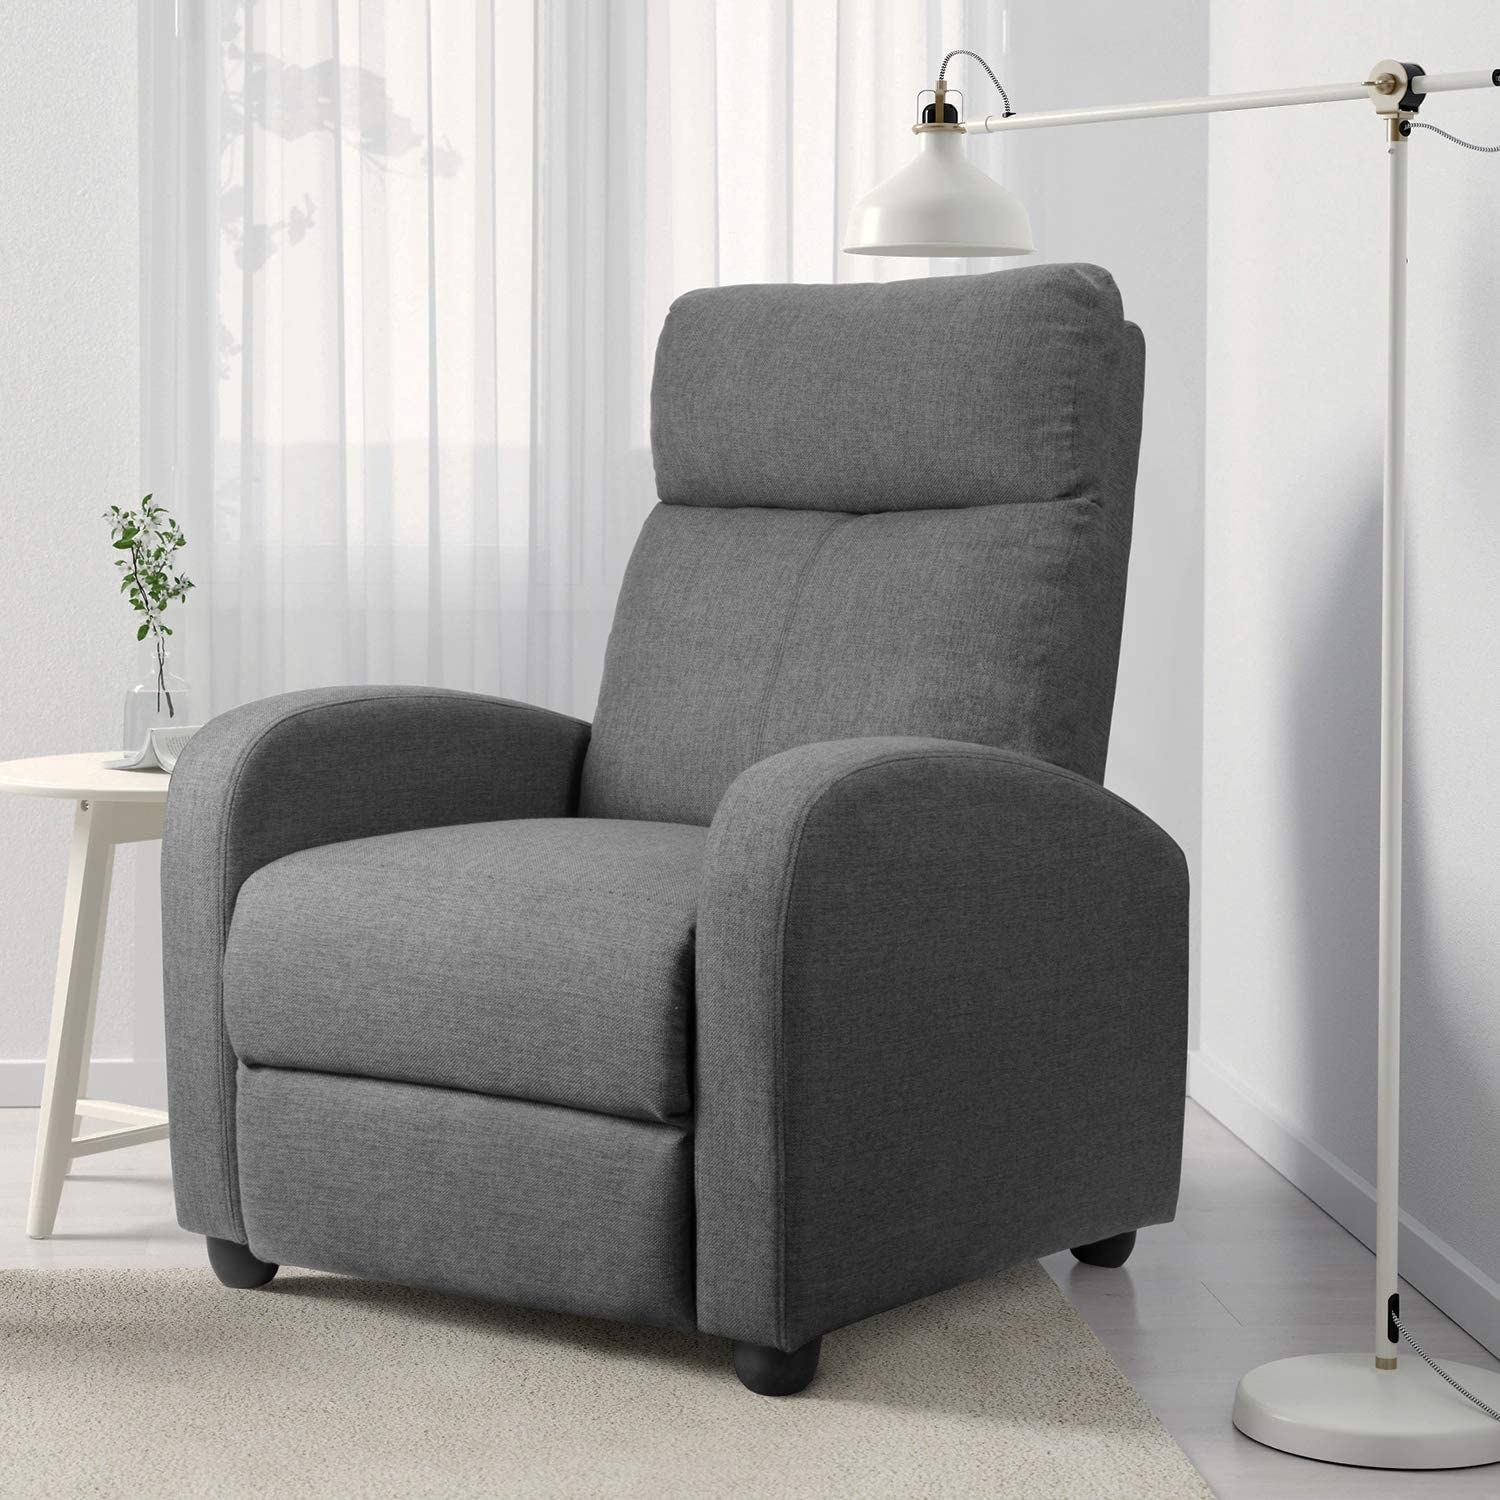 The gray fabric sofa recliner with arms